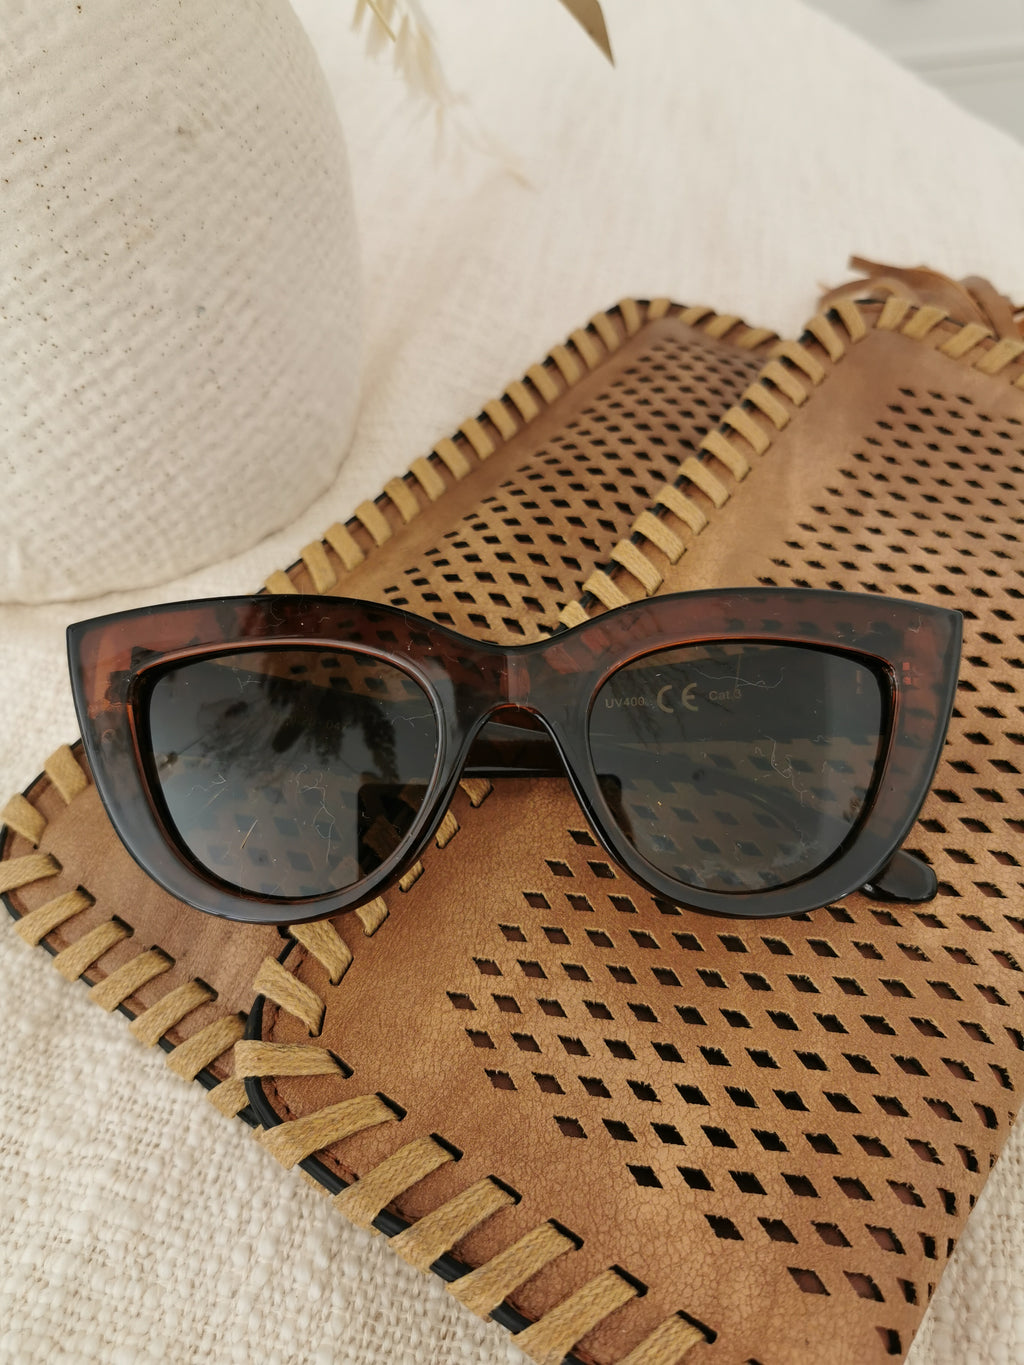 Darling August Sunglasses